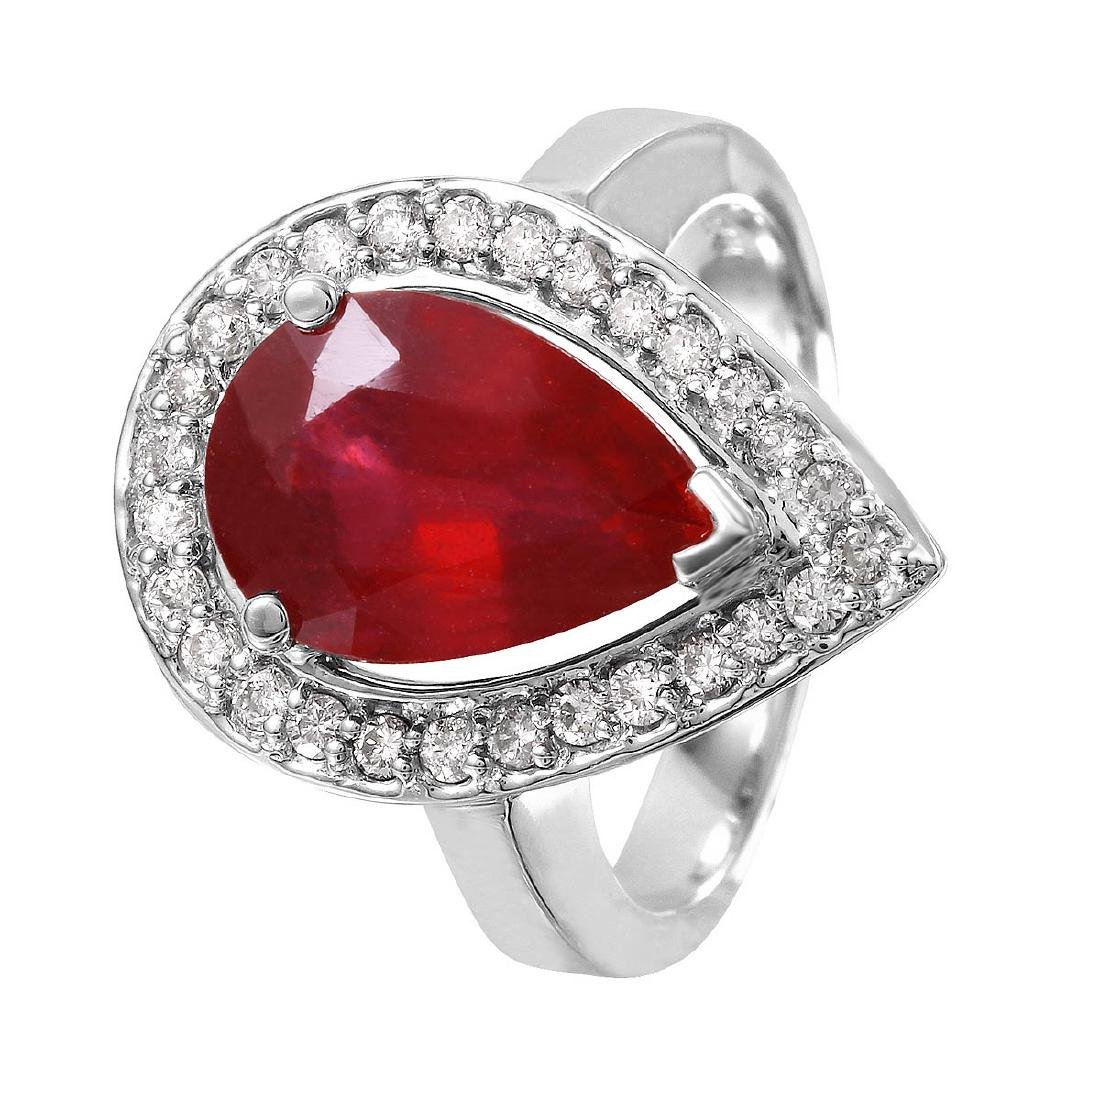 14KT White Gold 5.14ctw Ruby Diamond Cocktail Ring Size